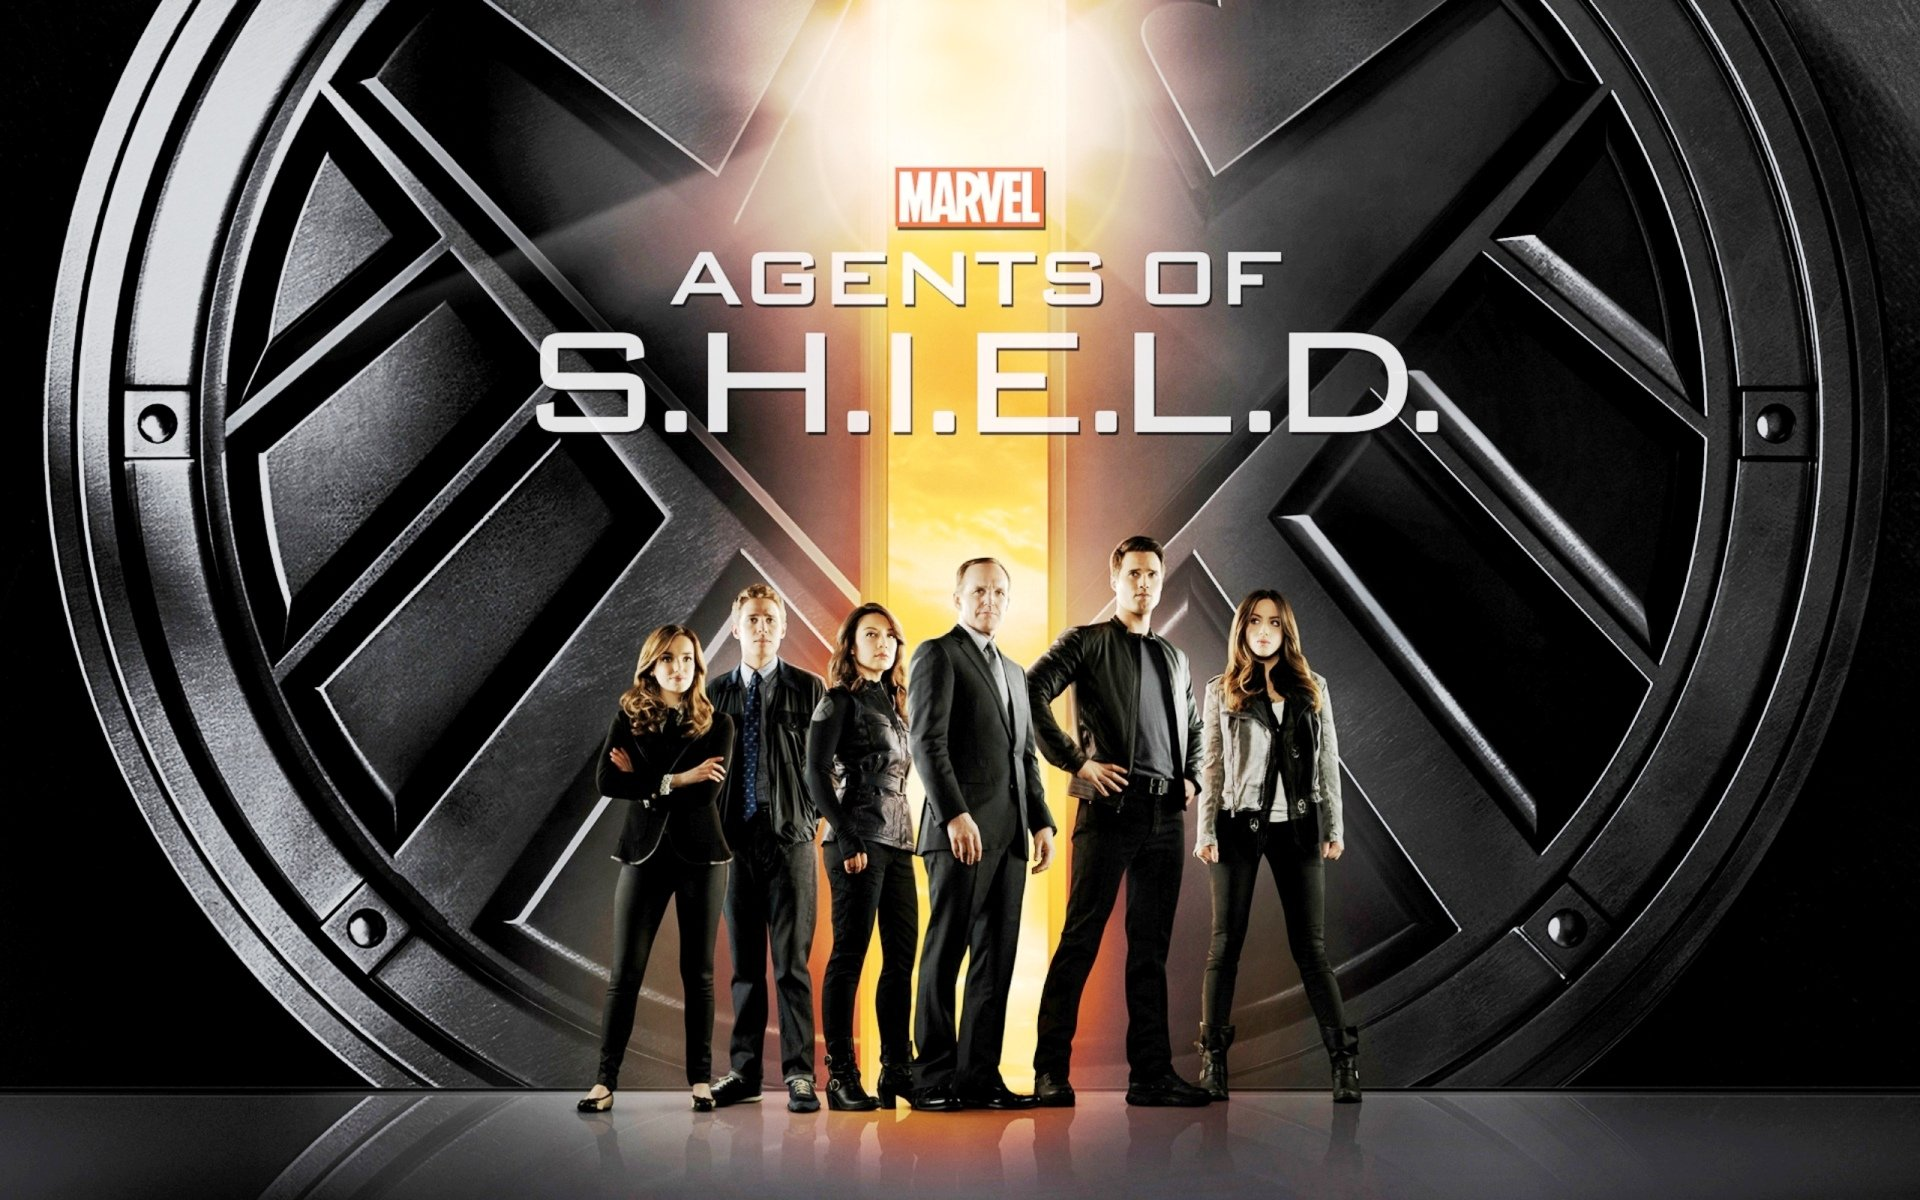 AGENTS OF SHIELD action drama sci fi marvel comic series crime 23 1920x1200